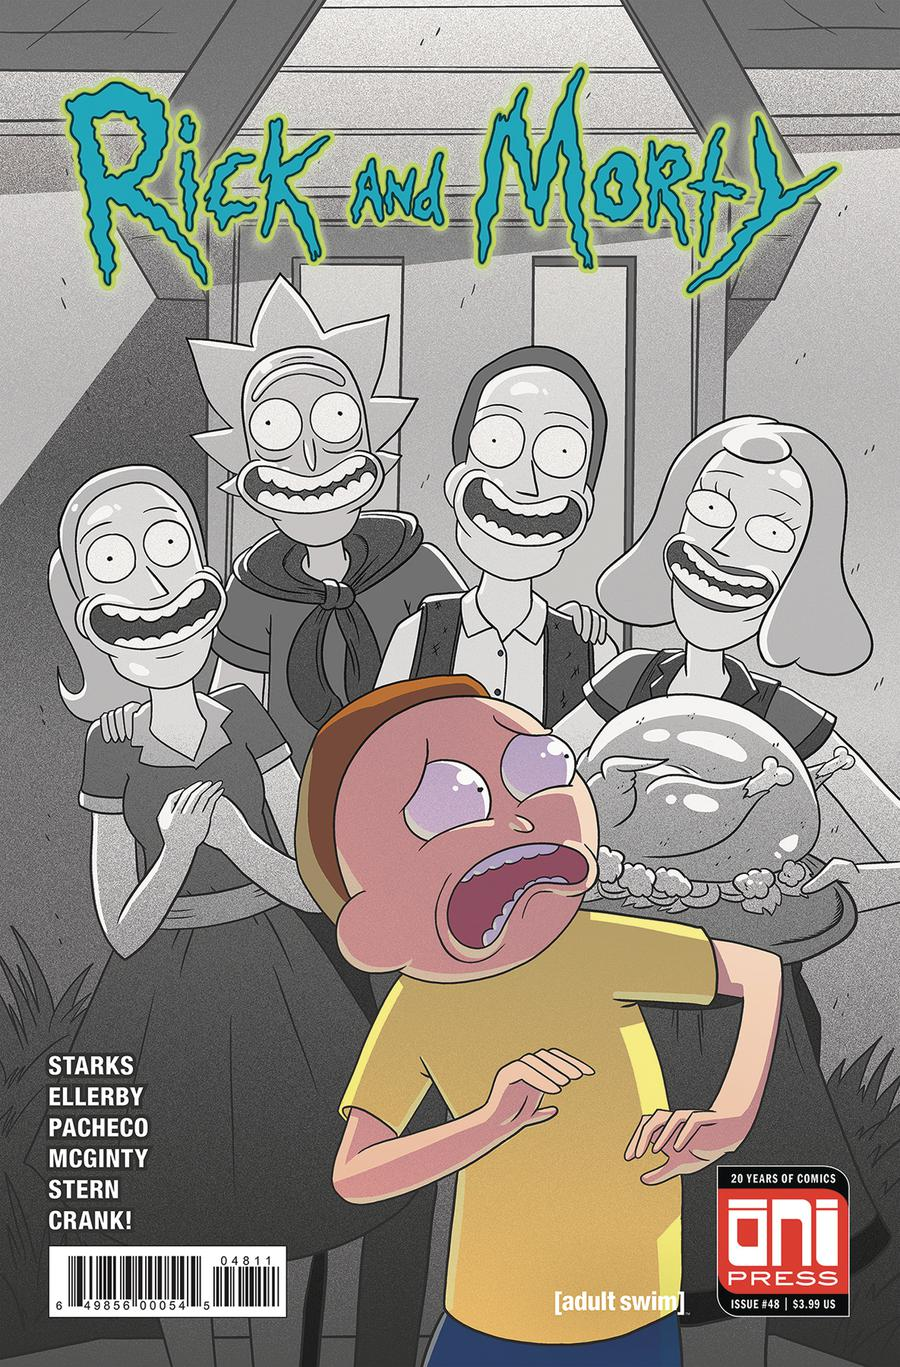 Rick And Morty #48 Cover A Regular Marc Ellerby & Sarah Stern Cover